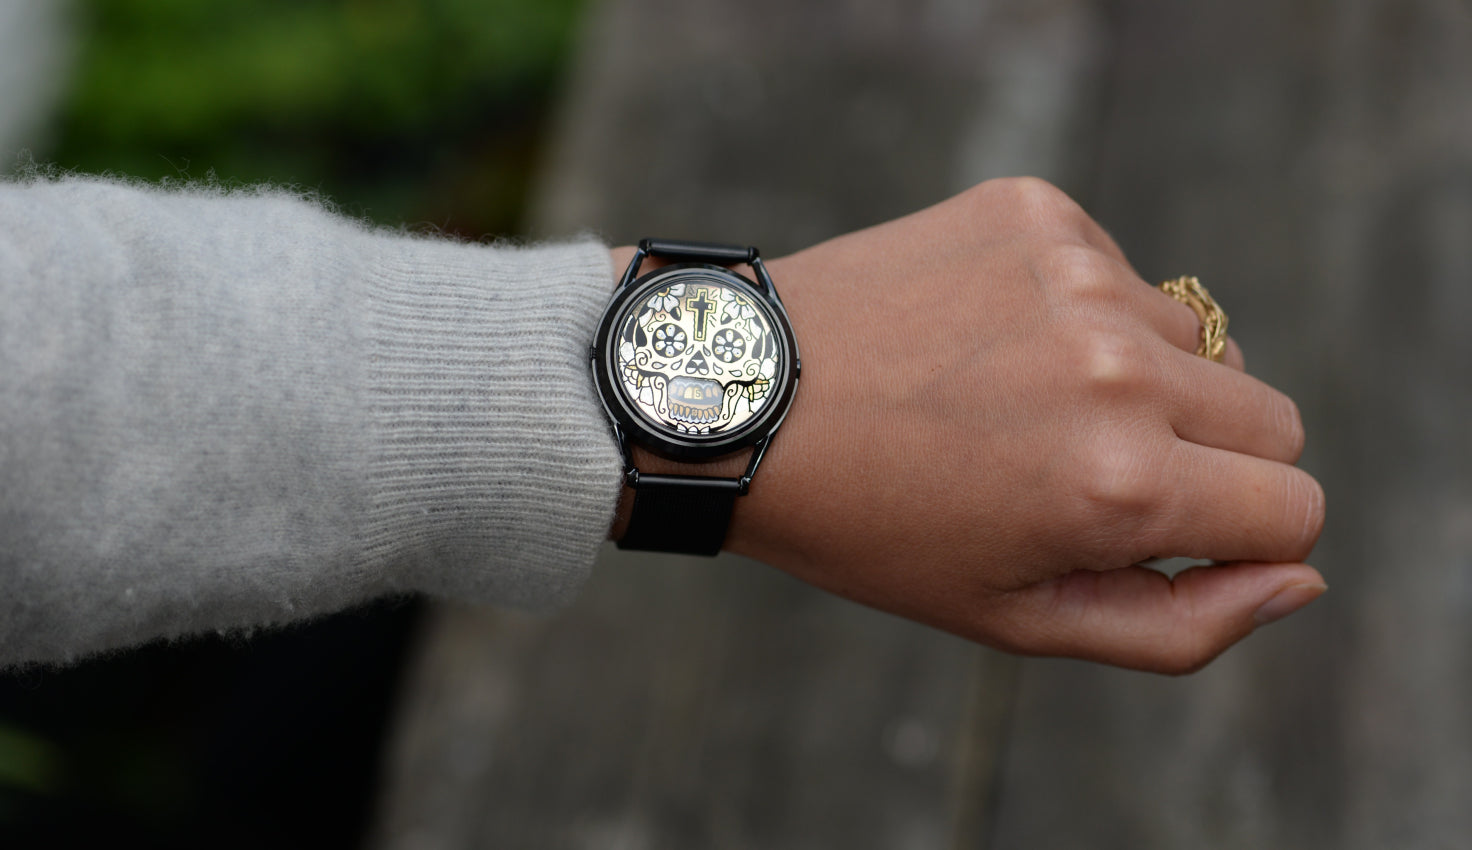 The Gilded Skull watch.